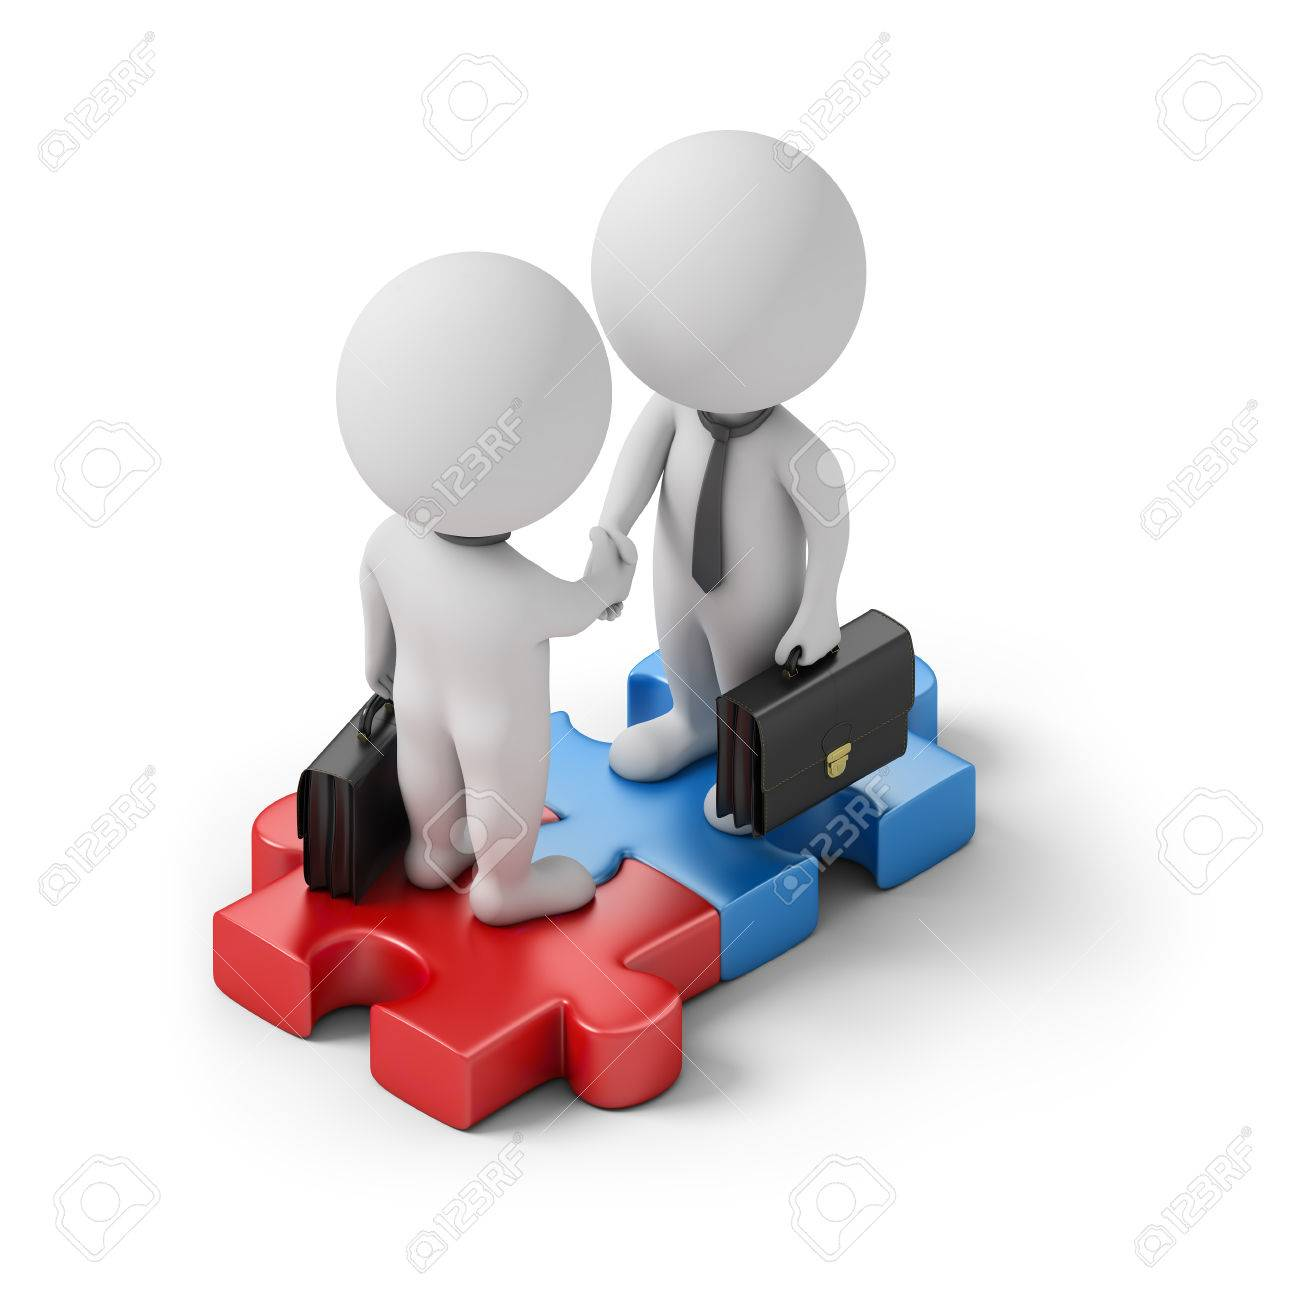 Isometric business people standing on the puzzle and make a handshake. 3d image. White background. - 69709540